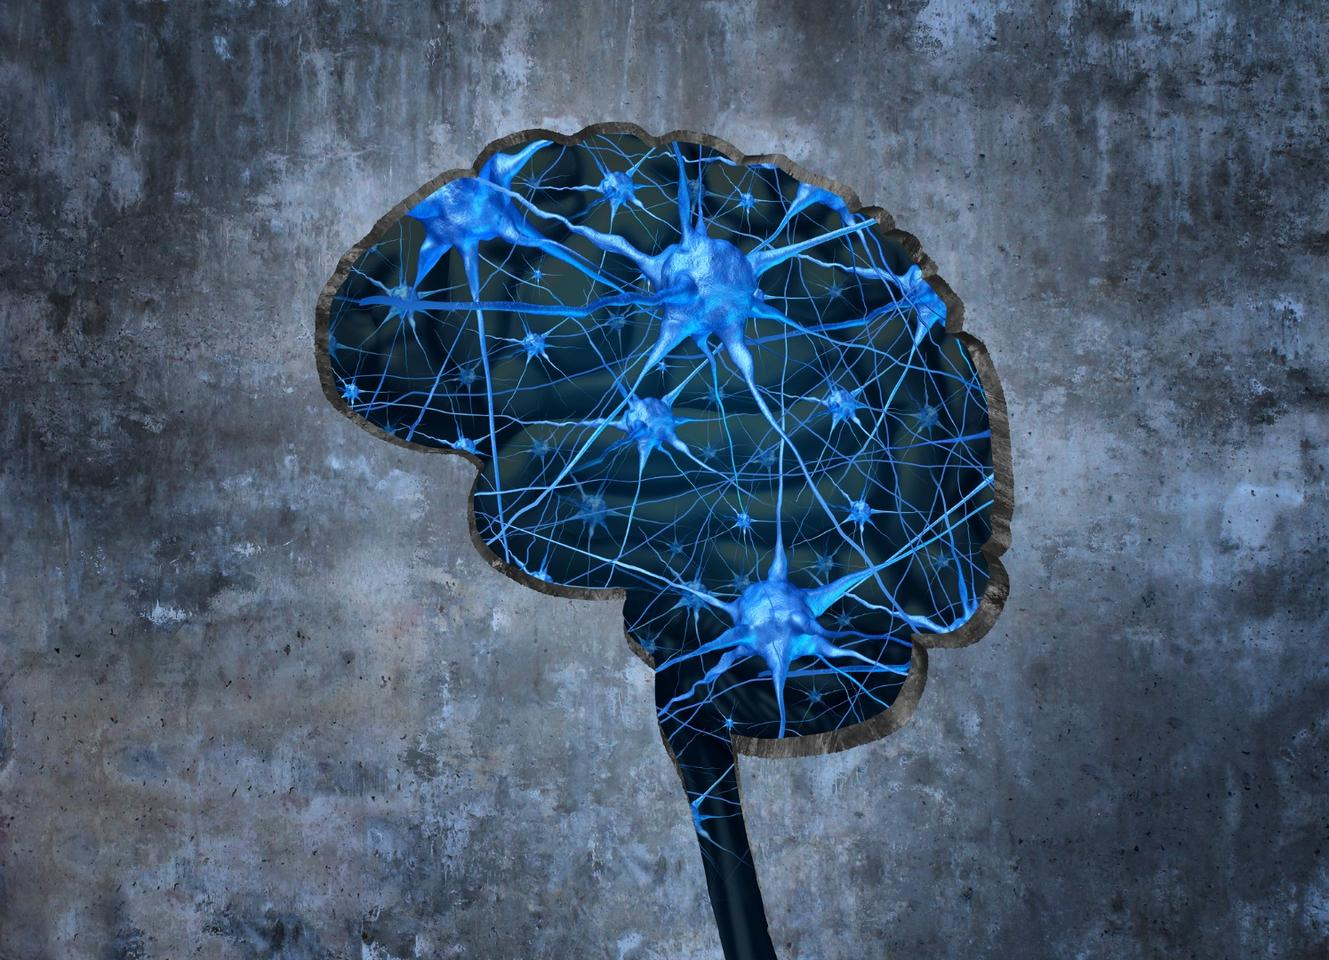 Promising research has reversed dementia-related brain damagein mice using an old asthma drug